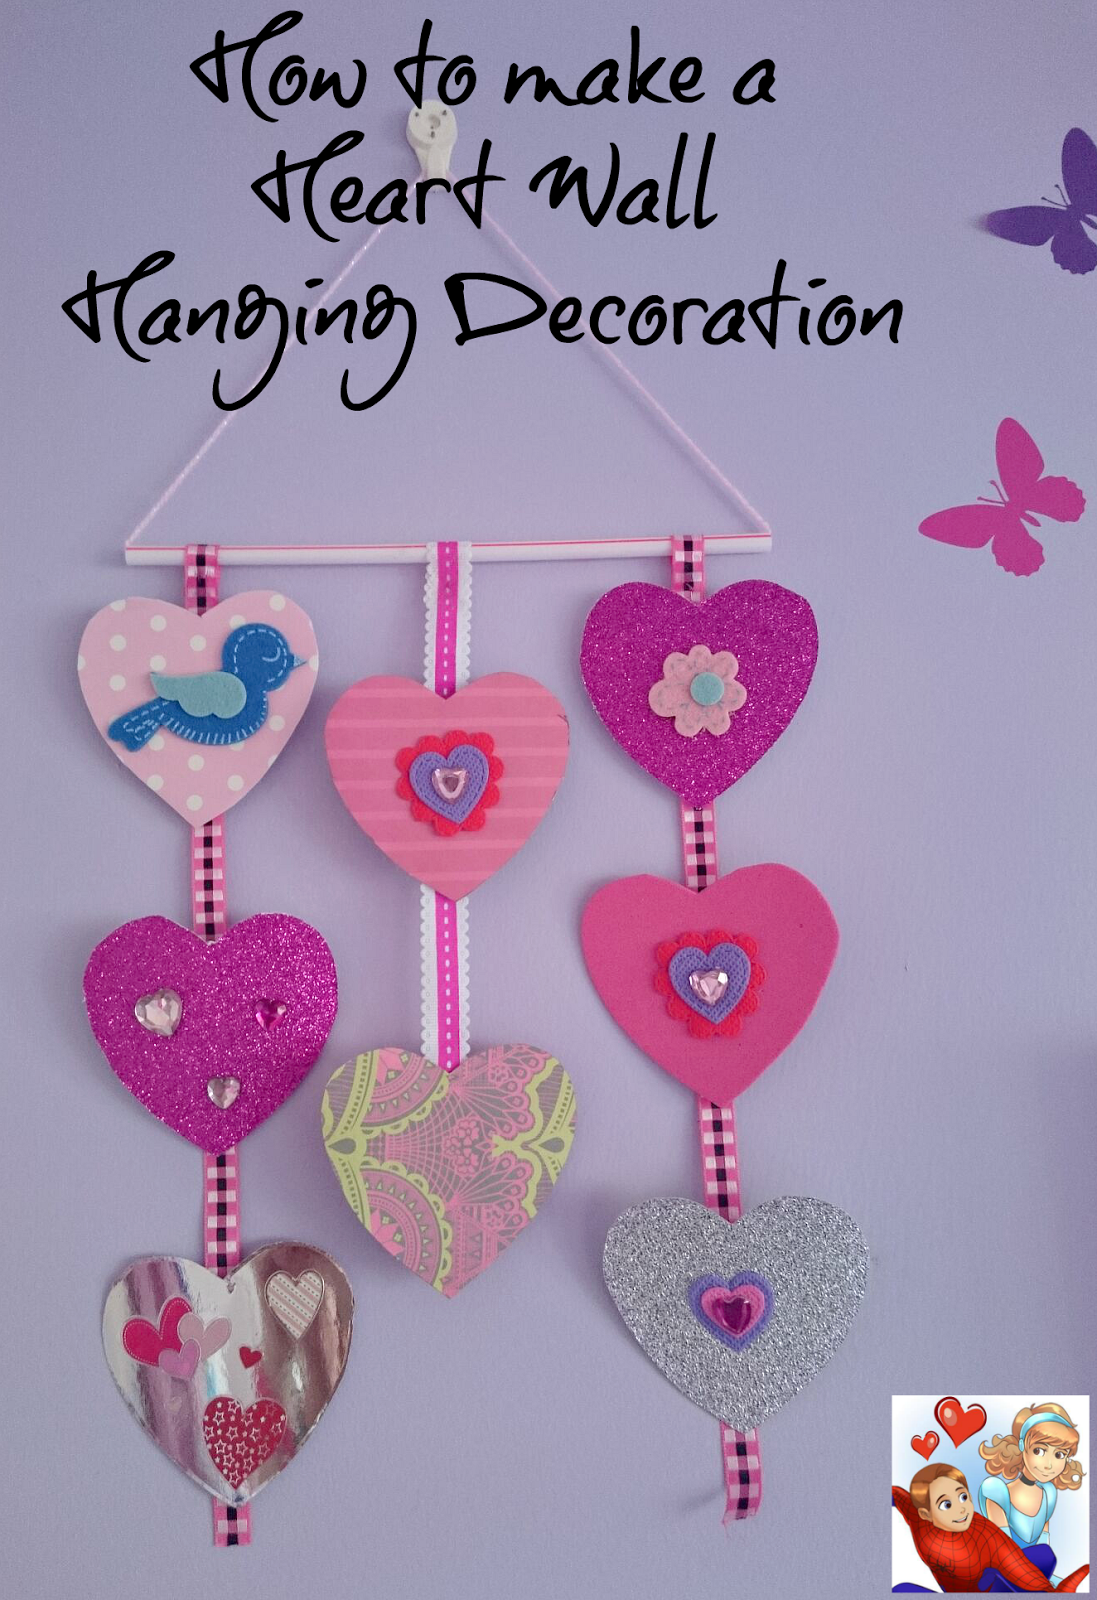 how to make a heart wall hanging decoration/heart mobile   heart